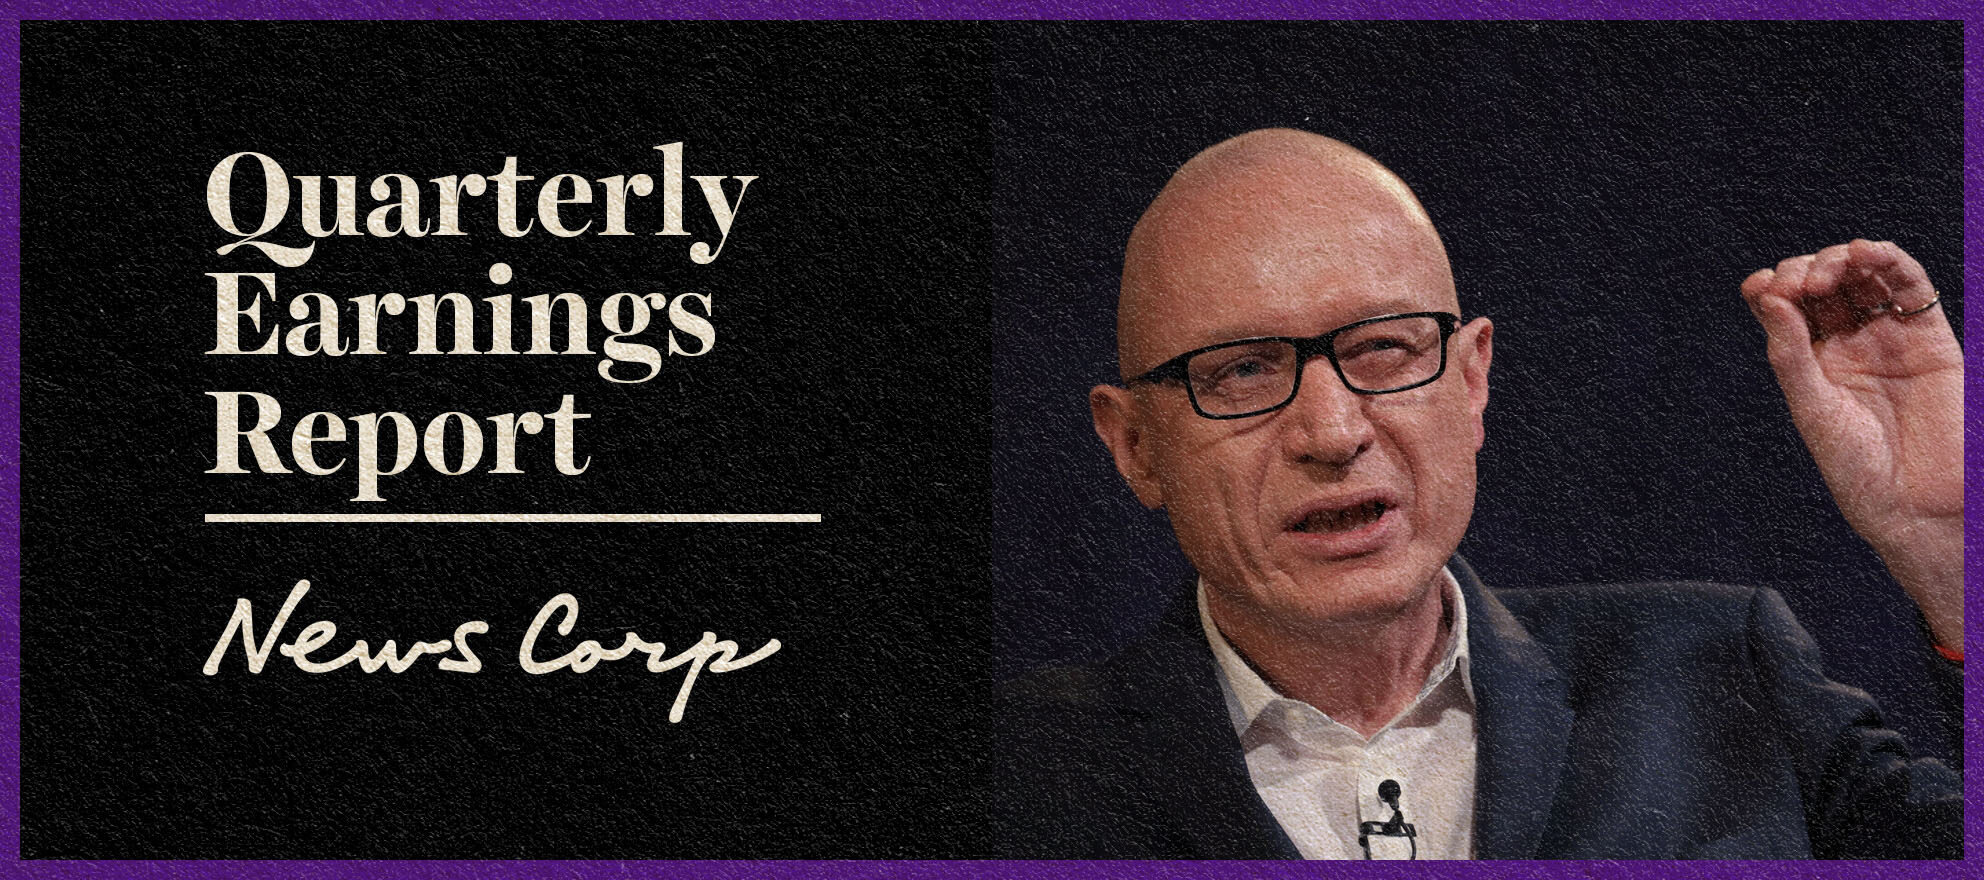 News Corp. earnings fall short, but realtor.com parent Move saw growth